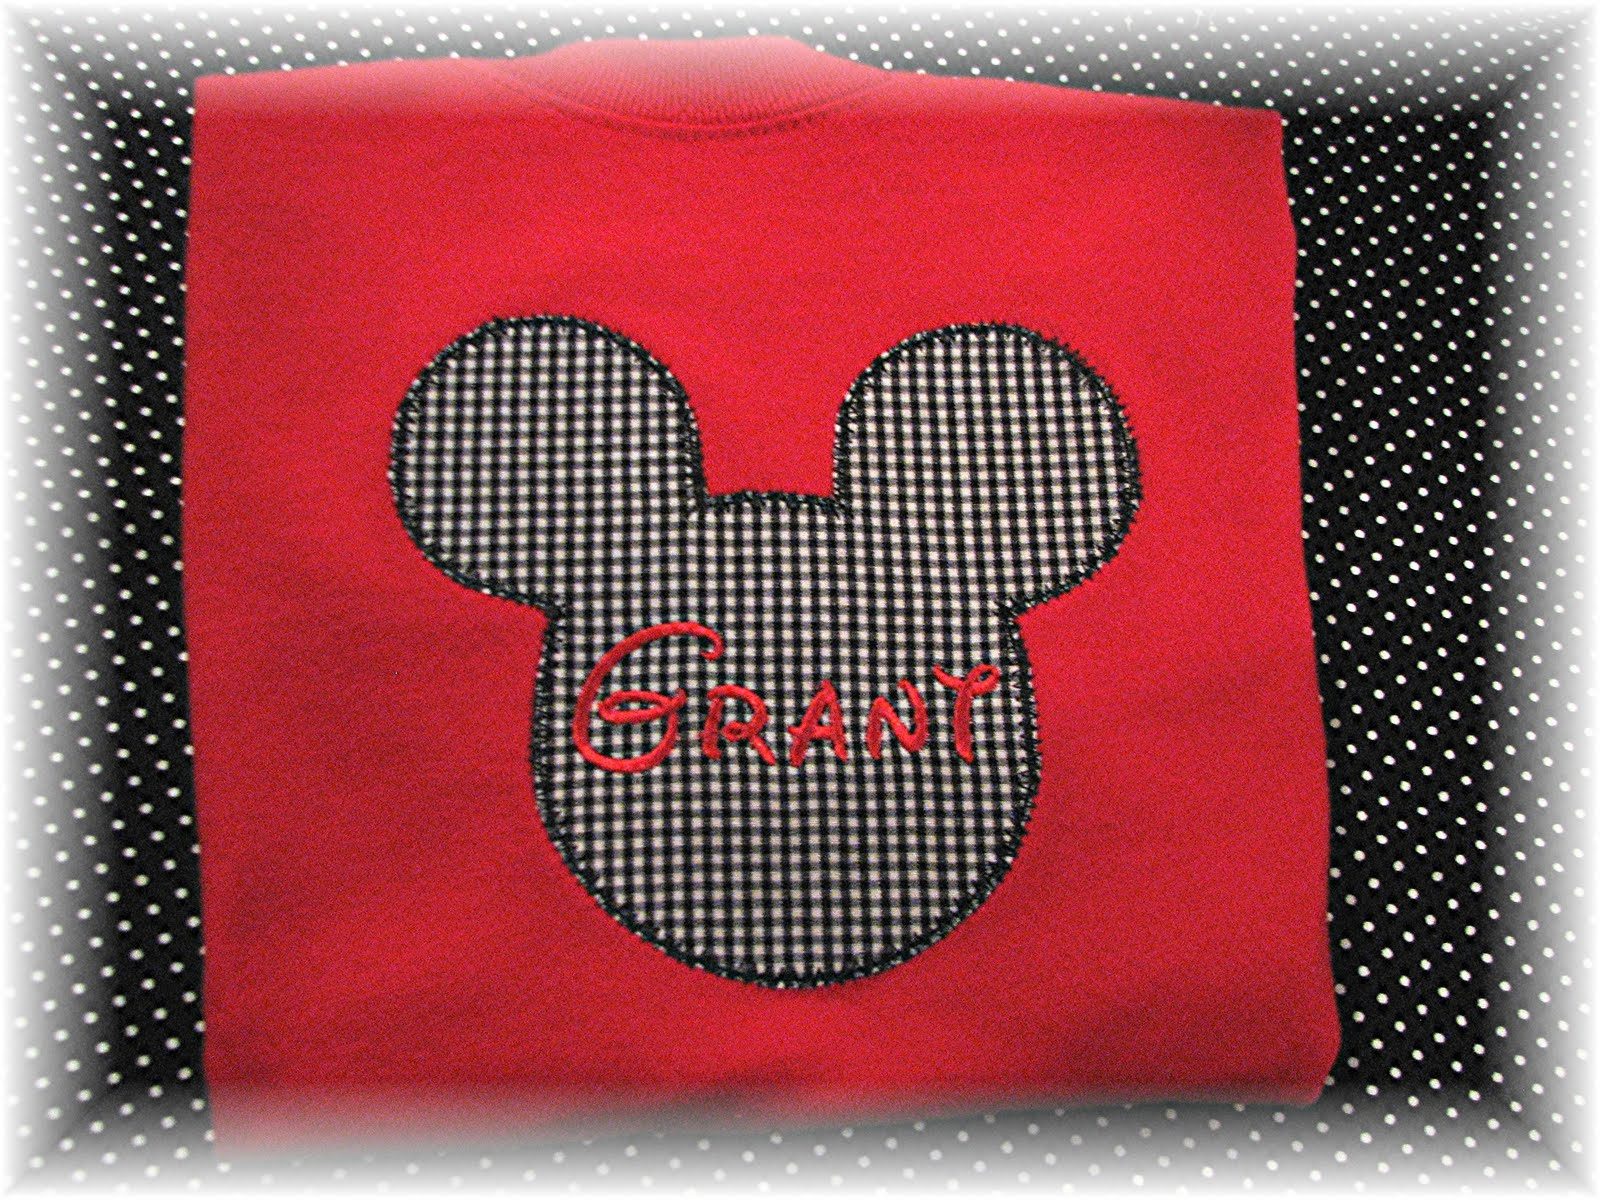 Mickey Shirt with the name Grant